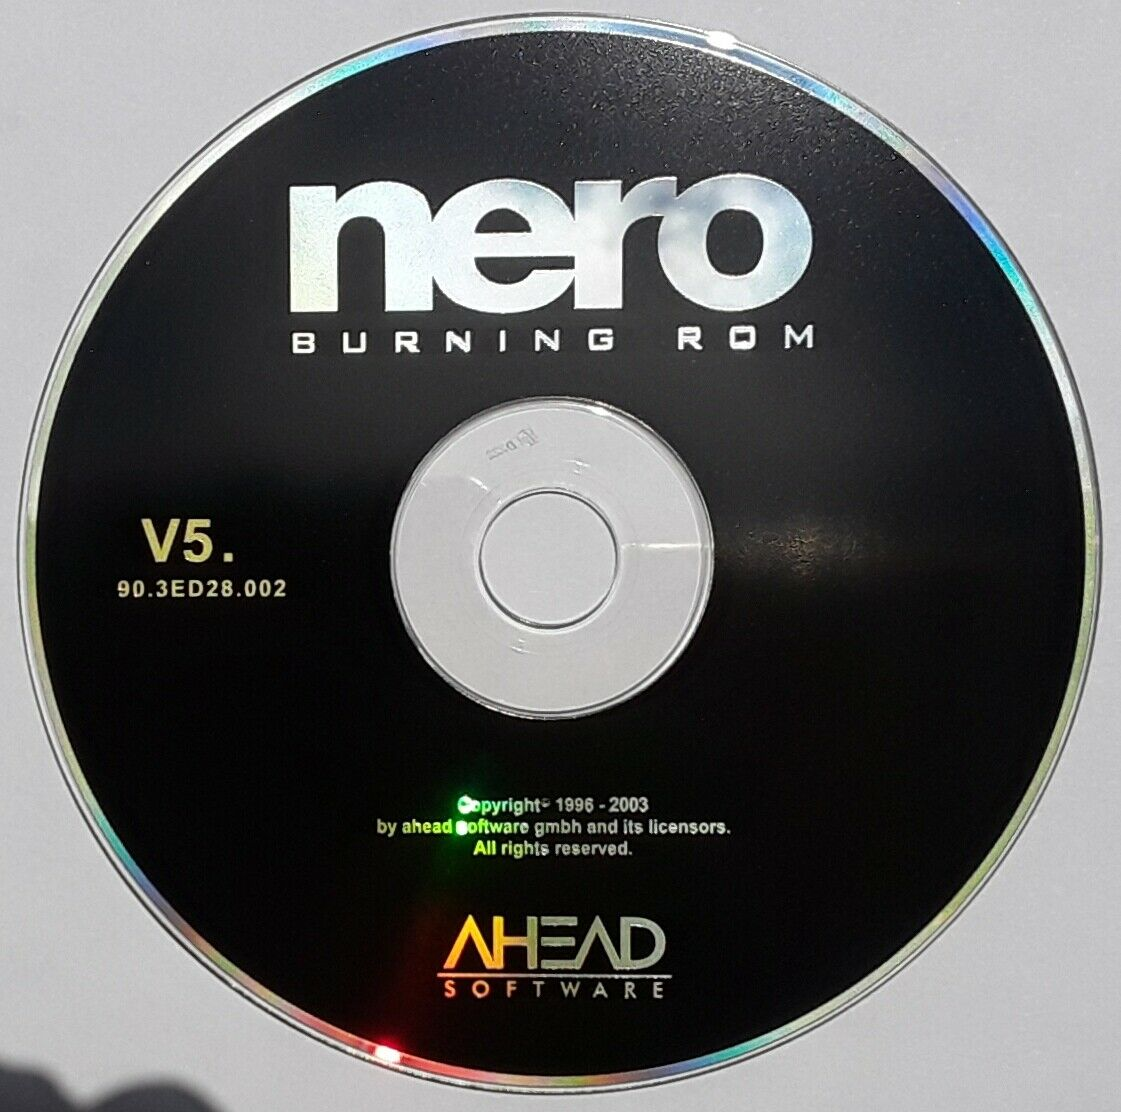 Ahead Nero V 5. Burning Software for Windows 95, 98, NT 4.0 and 2000